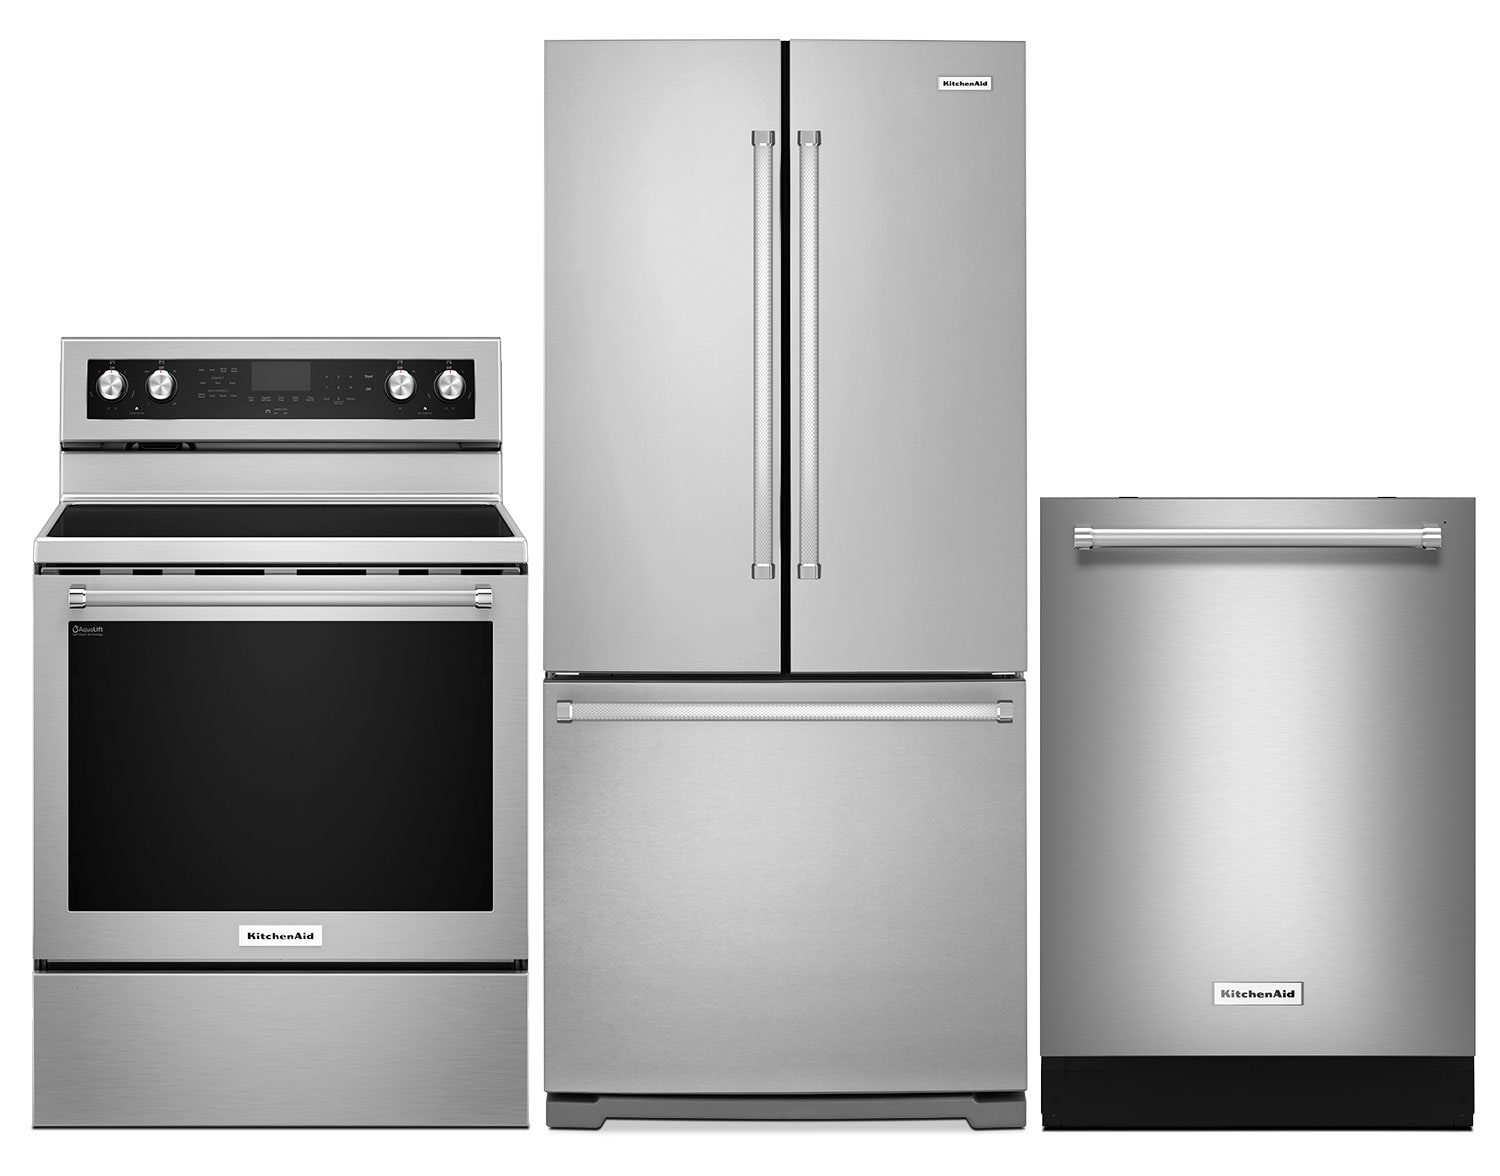 Cooking Products - KitchenAid 19.7 Cu. Ft. Refrigerator, 6.4 Cu. Ft. Range and Dishwasher – Stainless Steel